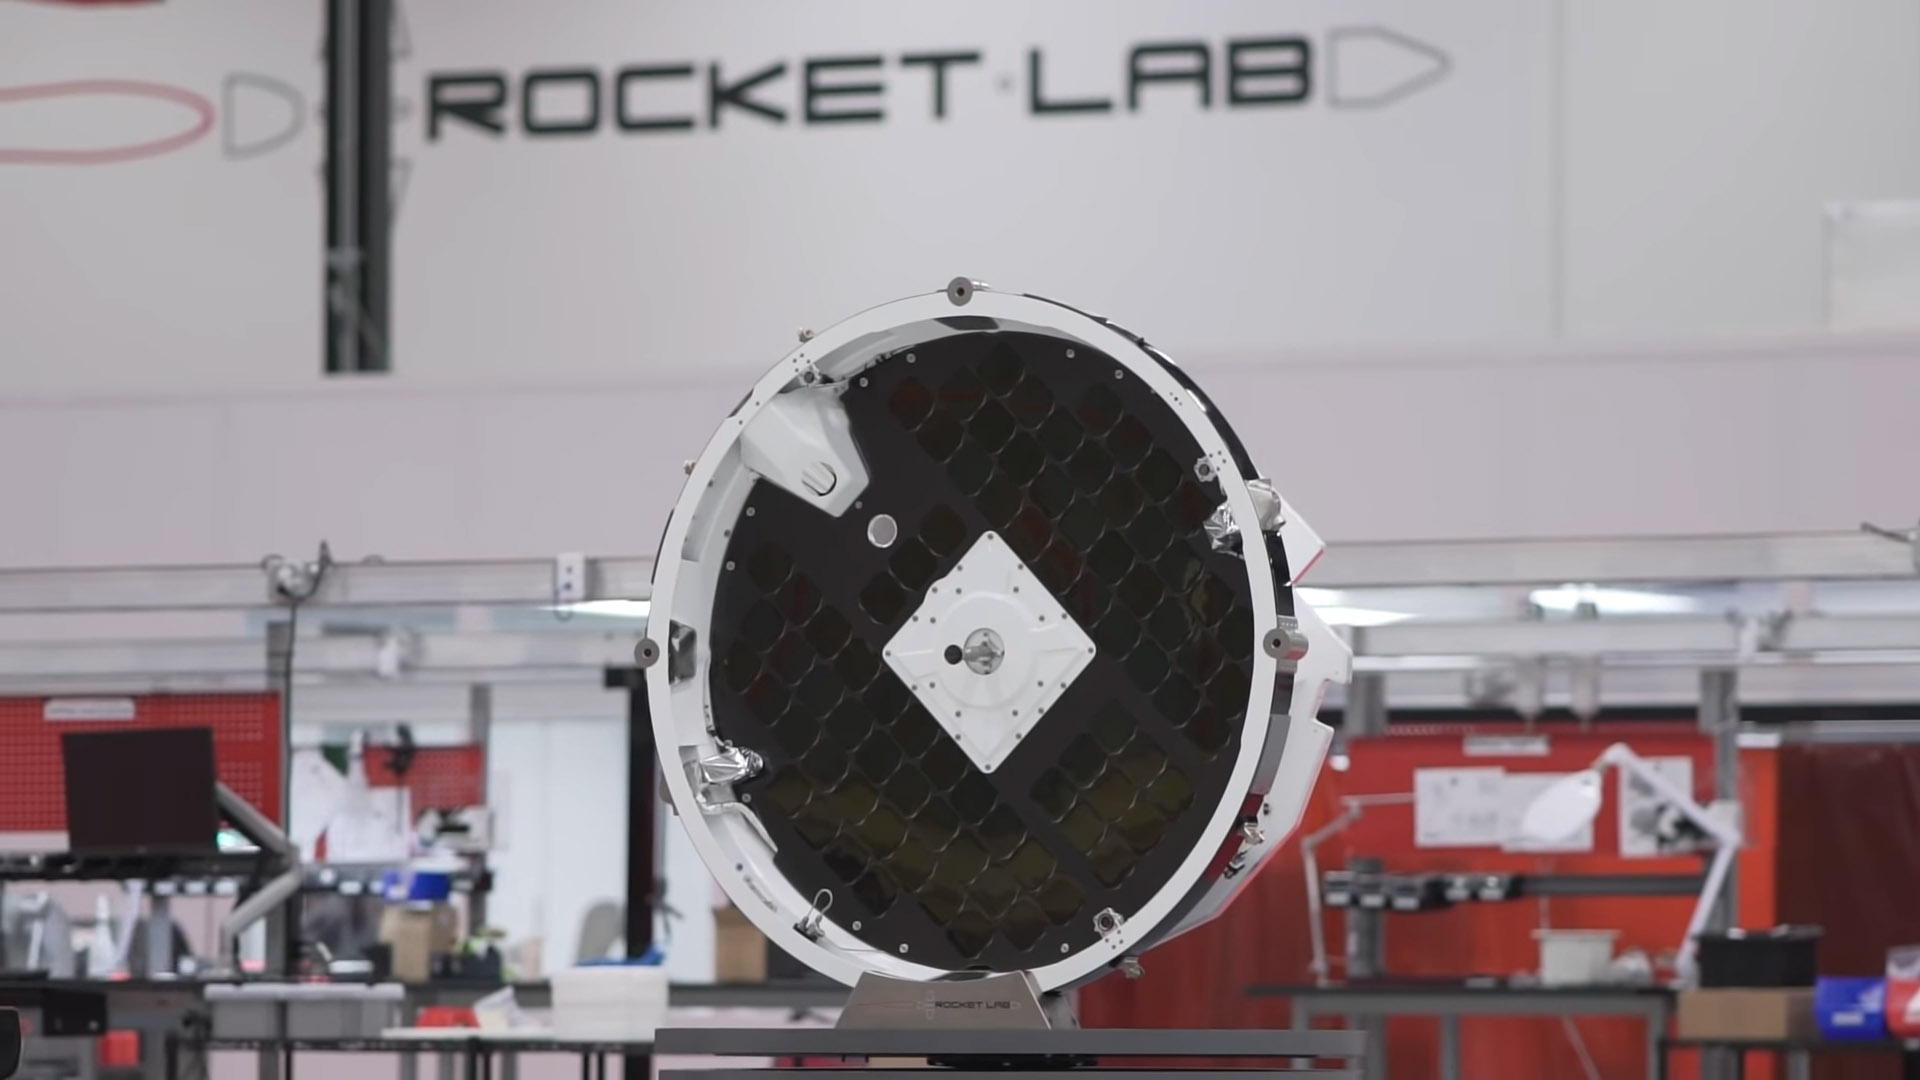 Rocket Lab Photon